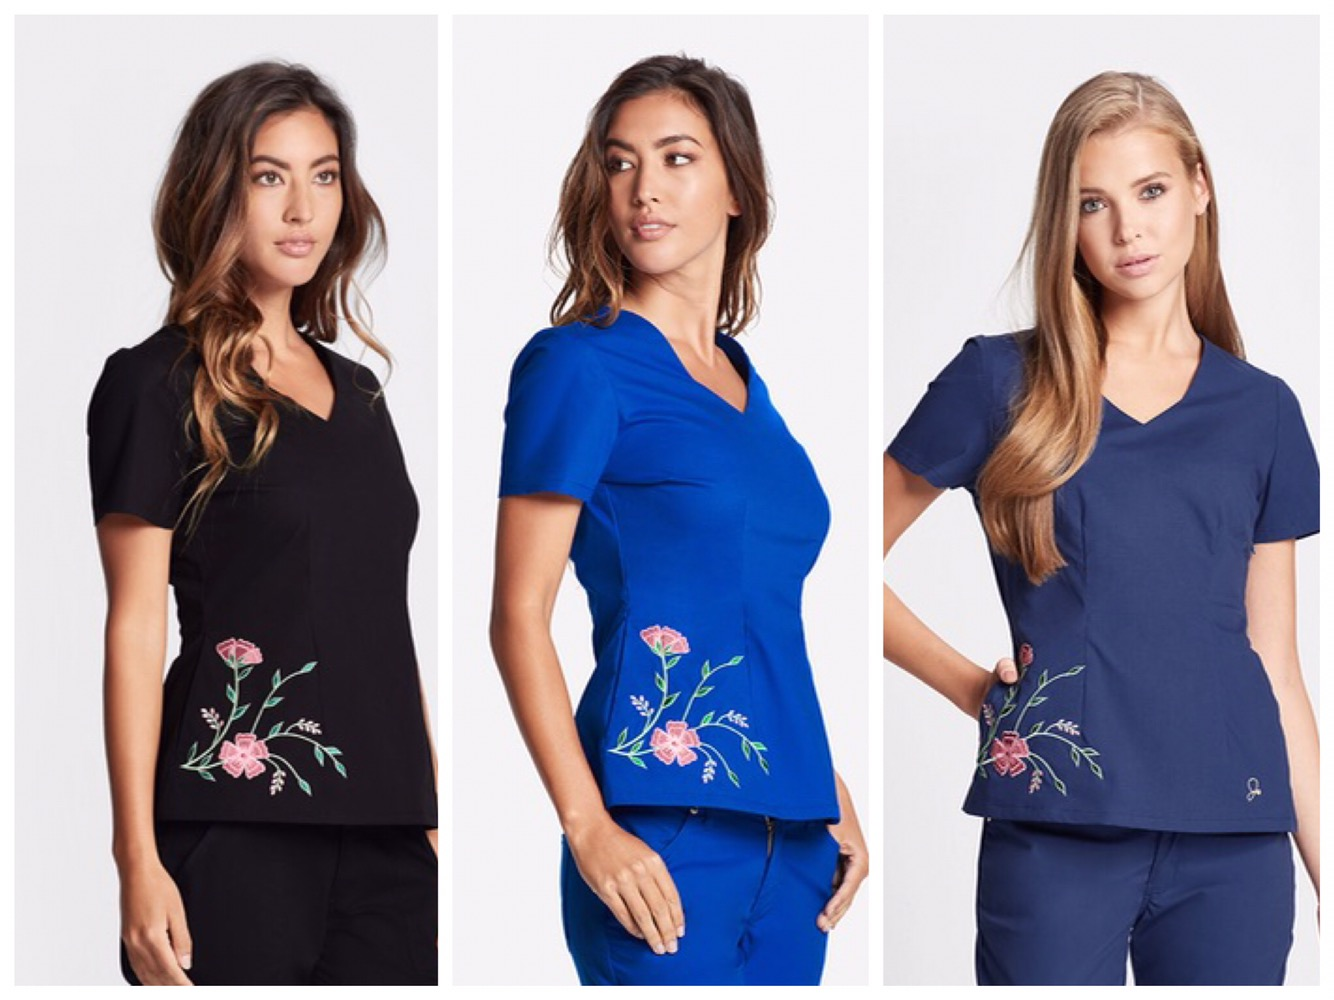 4d8ef4fb9b5 Home News Companies Medical Apparel Brand Jaanuu Raises  5 Million To Drive  Company Growth and Expand Line of Stylish and Functional Scrubs